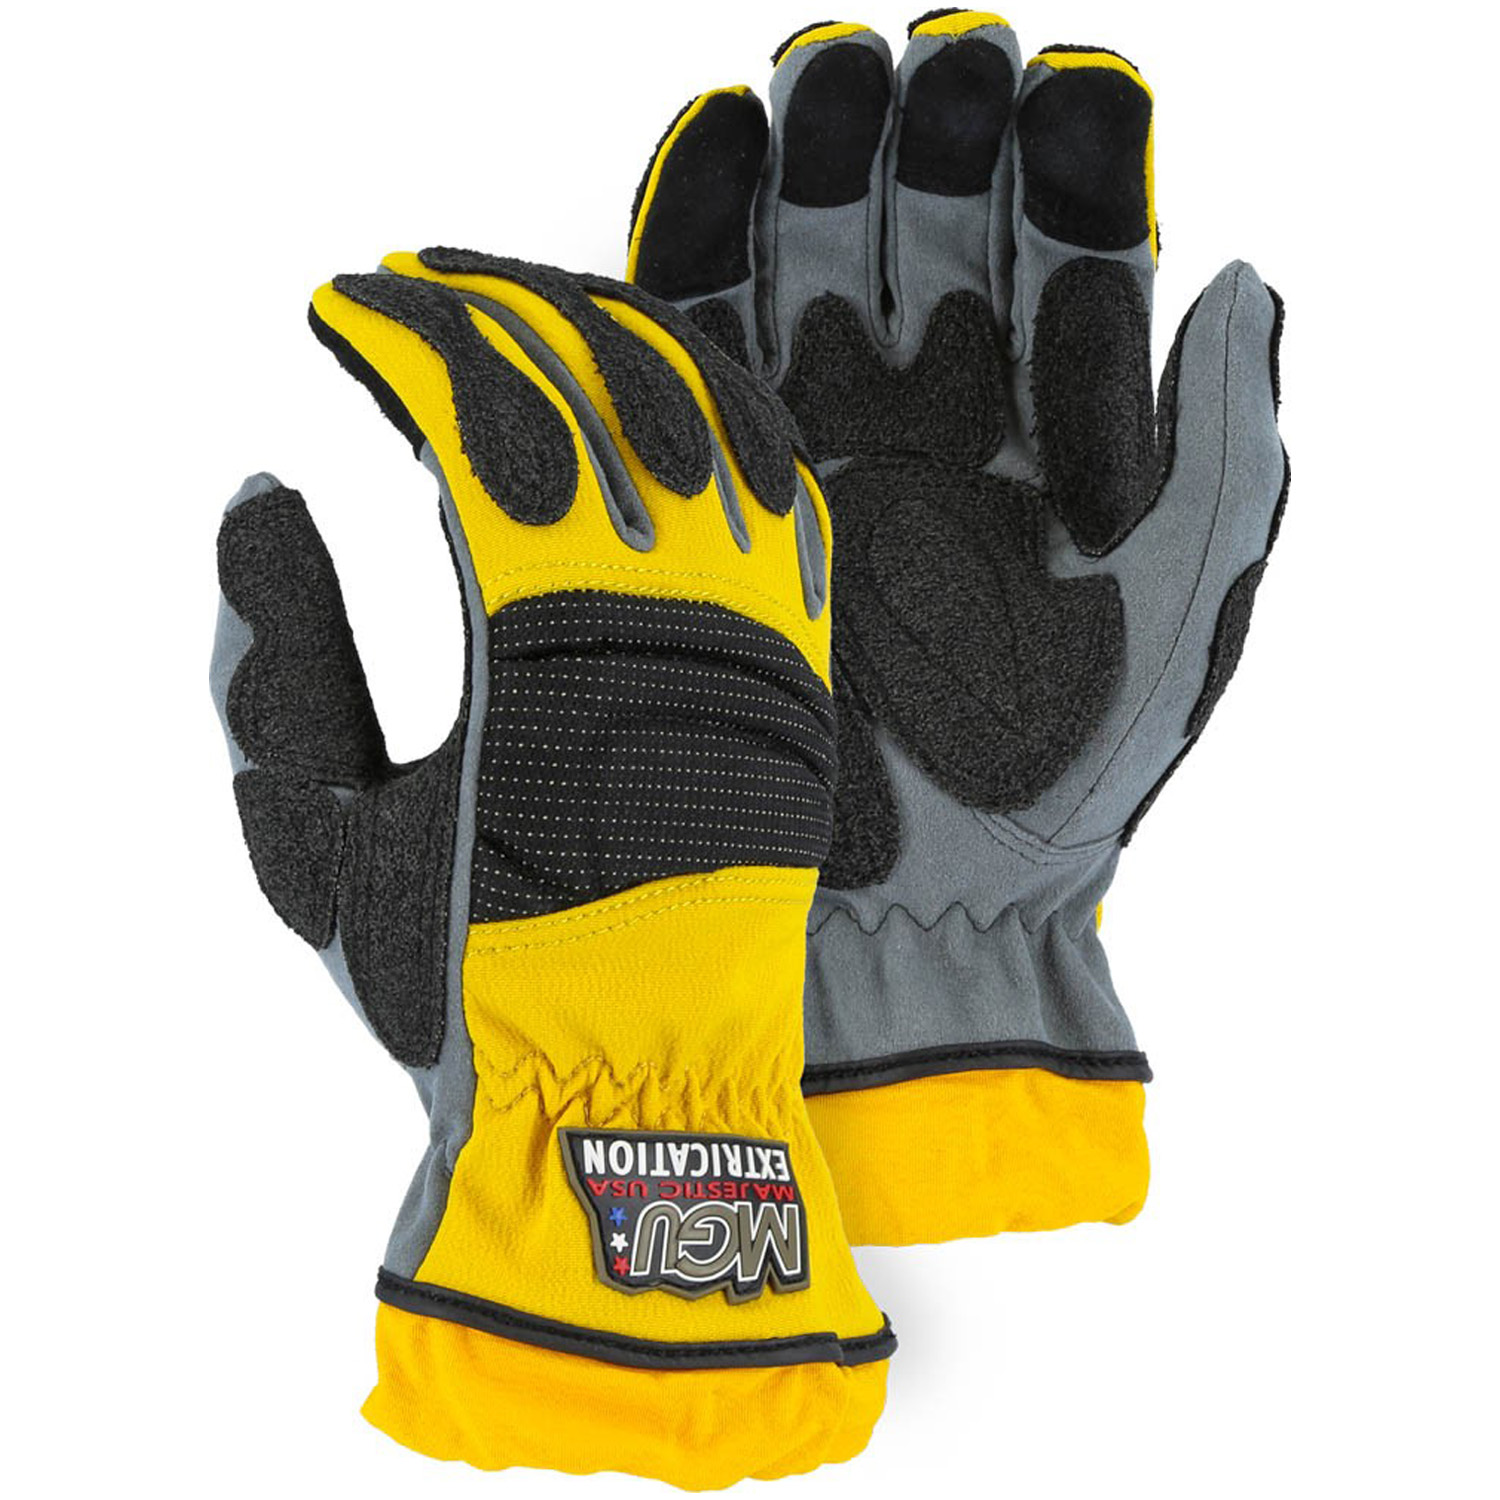 Majestic Extrication Gloves Yellow and Grey